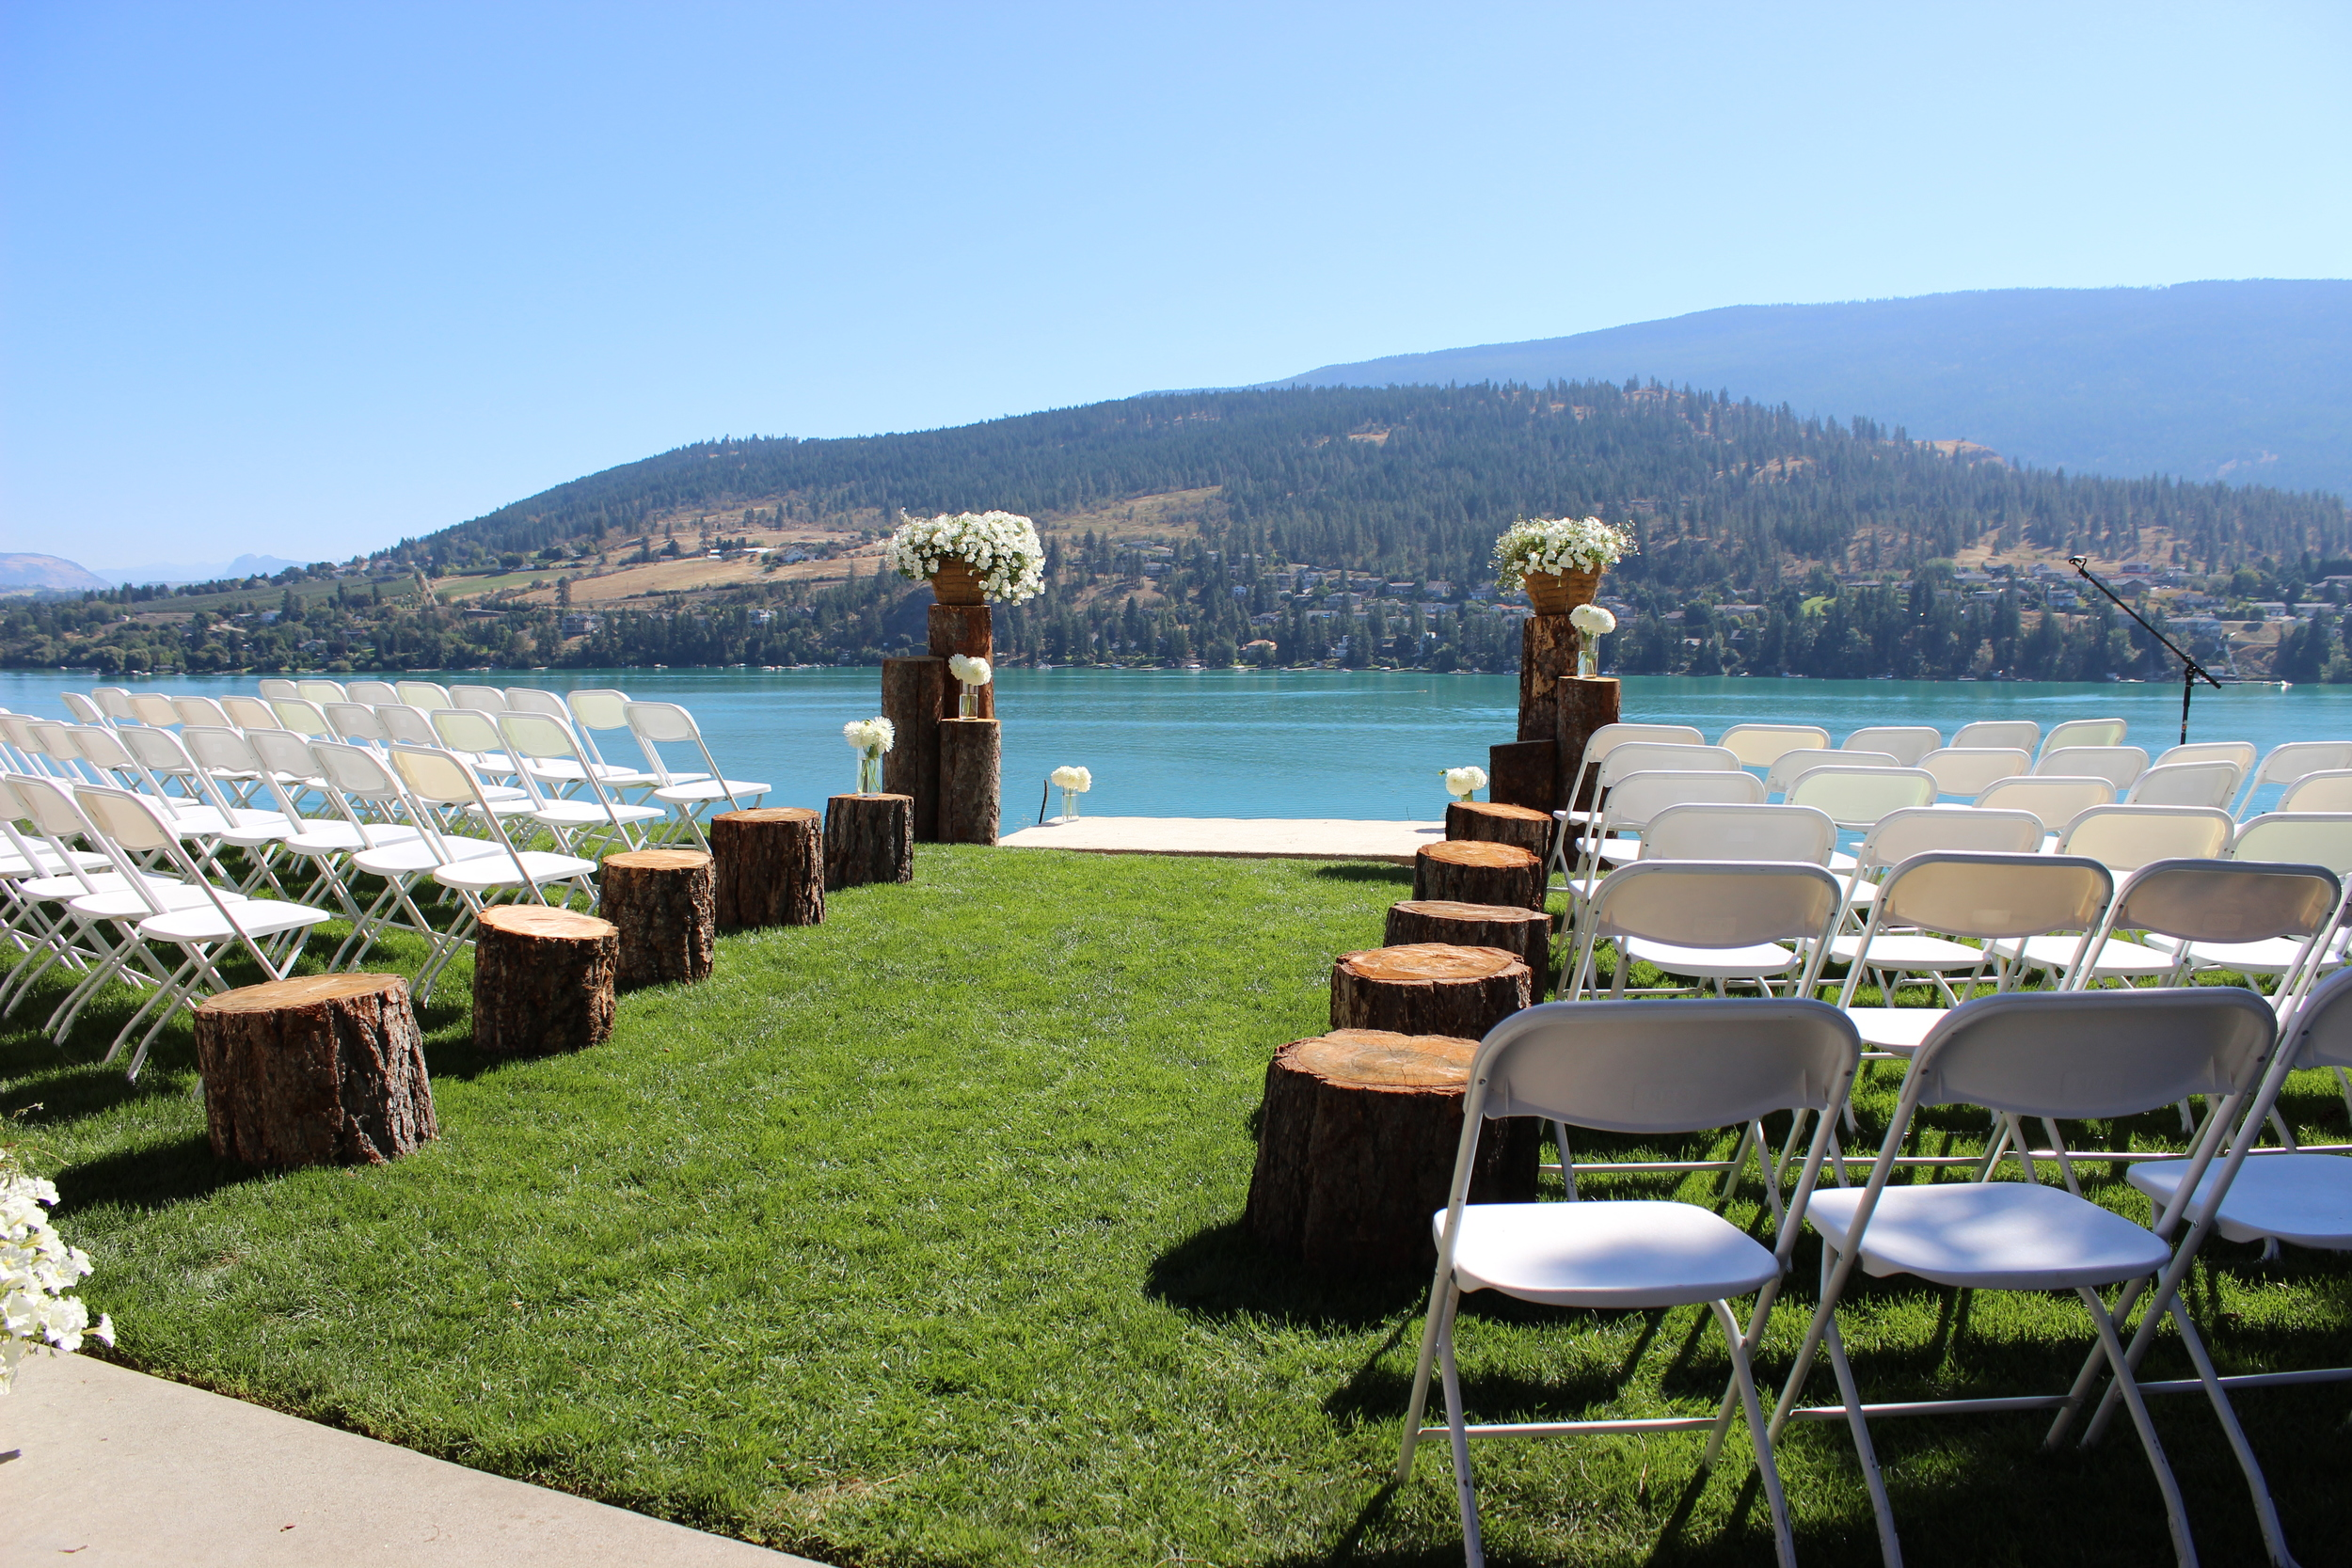 Beautiful setting for a wedding ceremony.